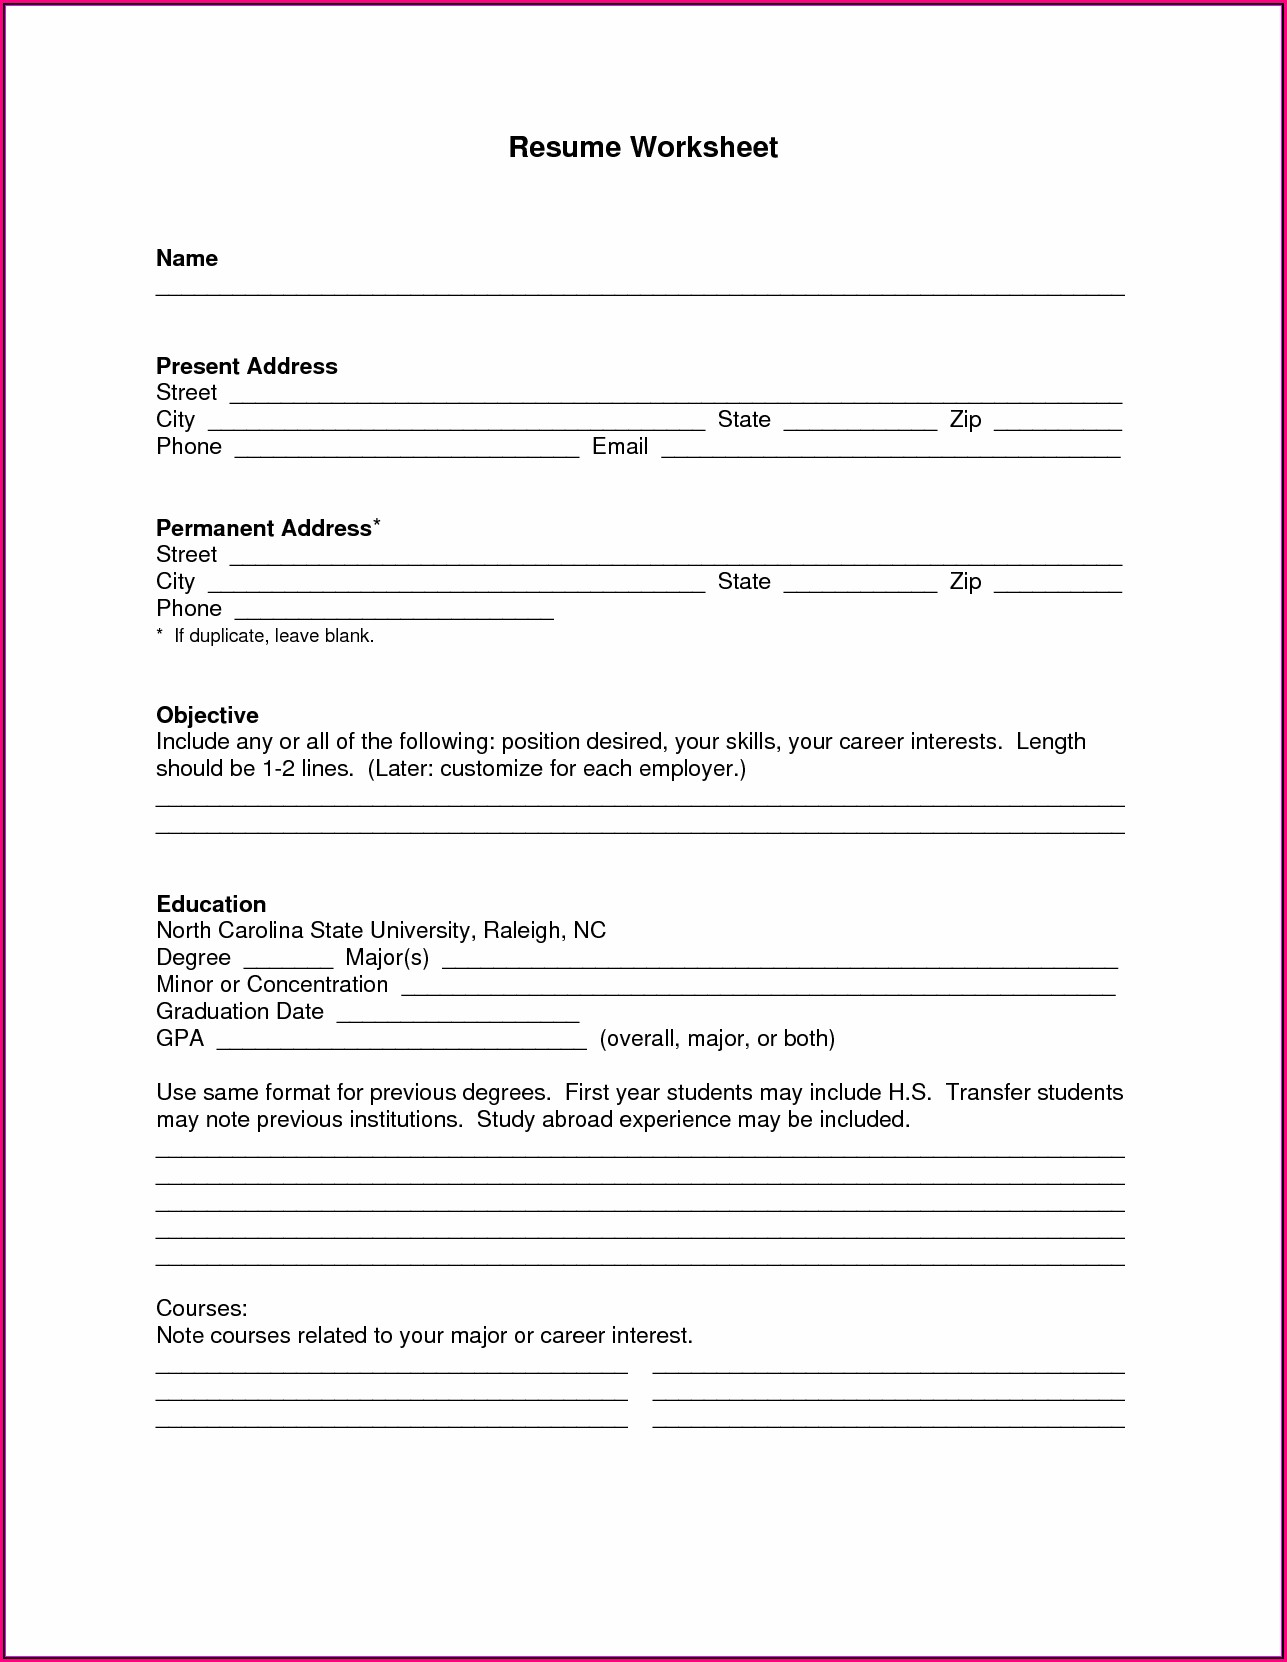 Printable Blank Resume Templates For Free